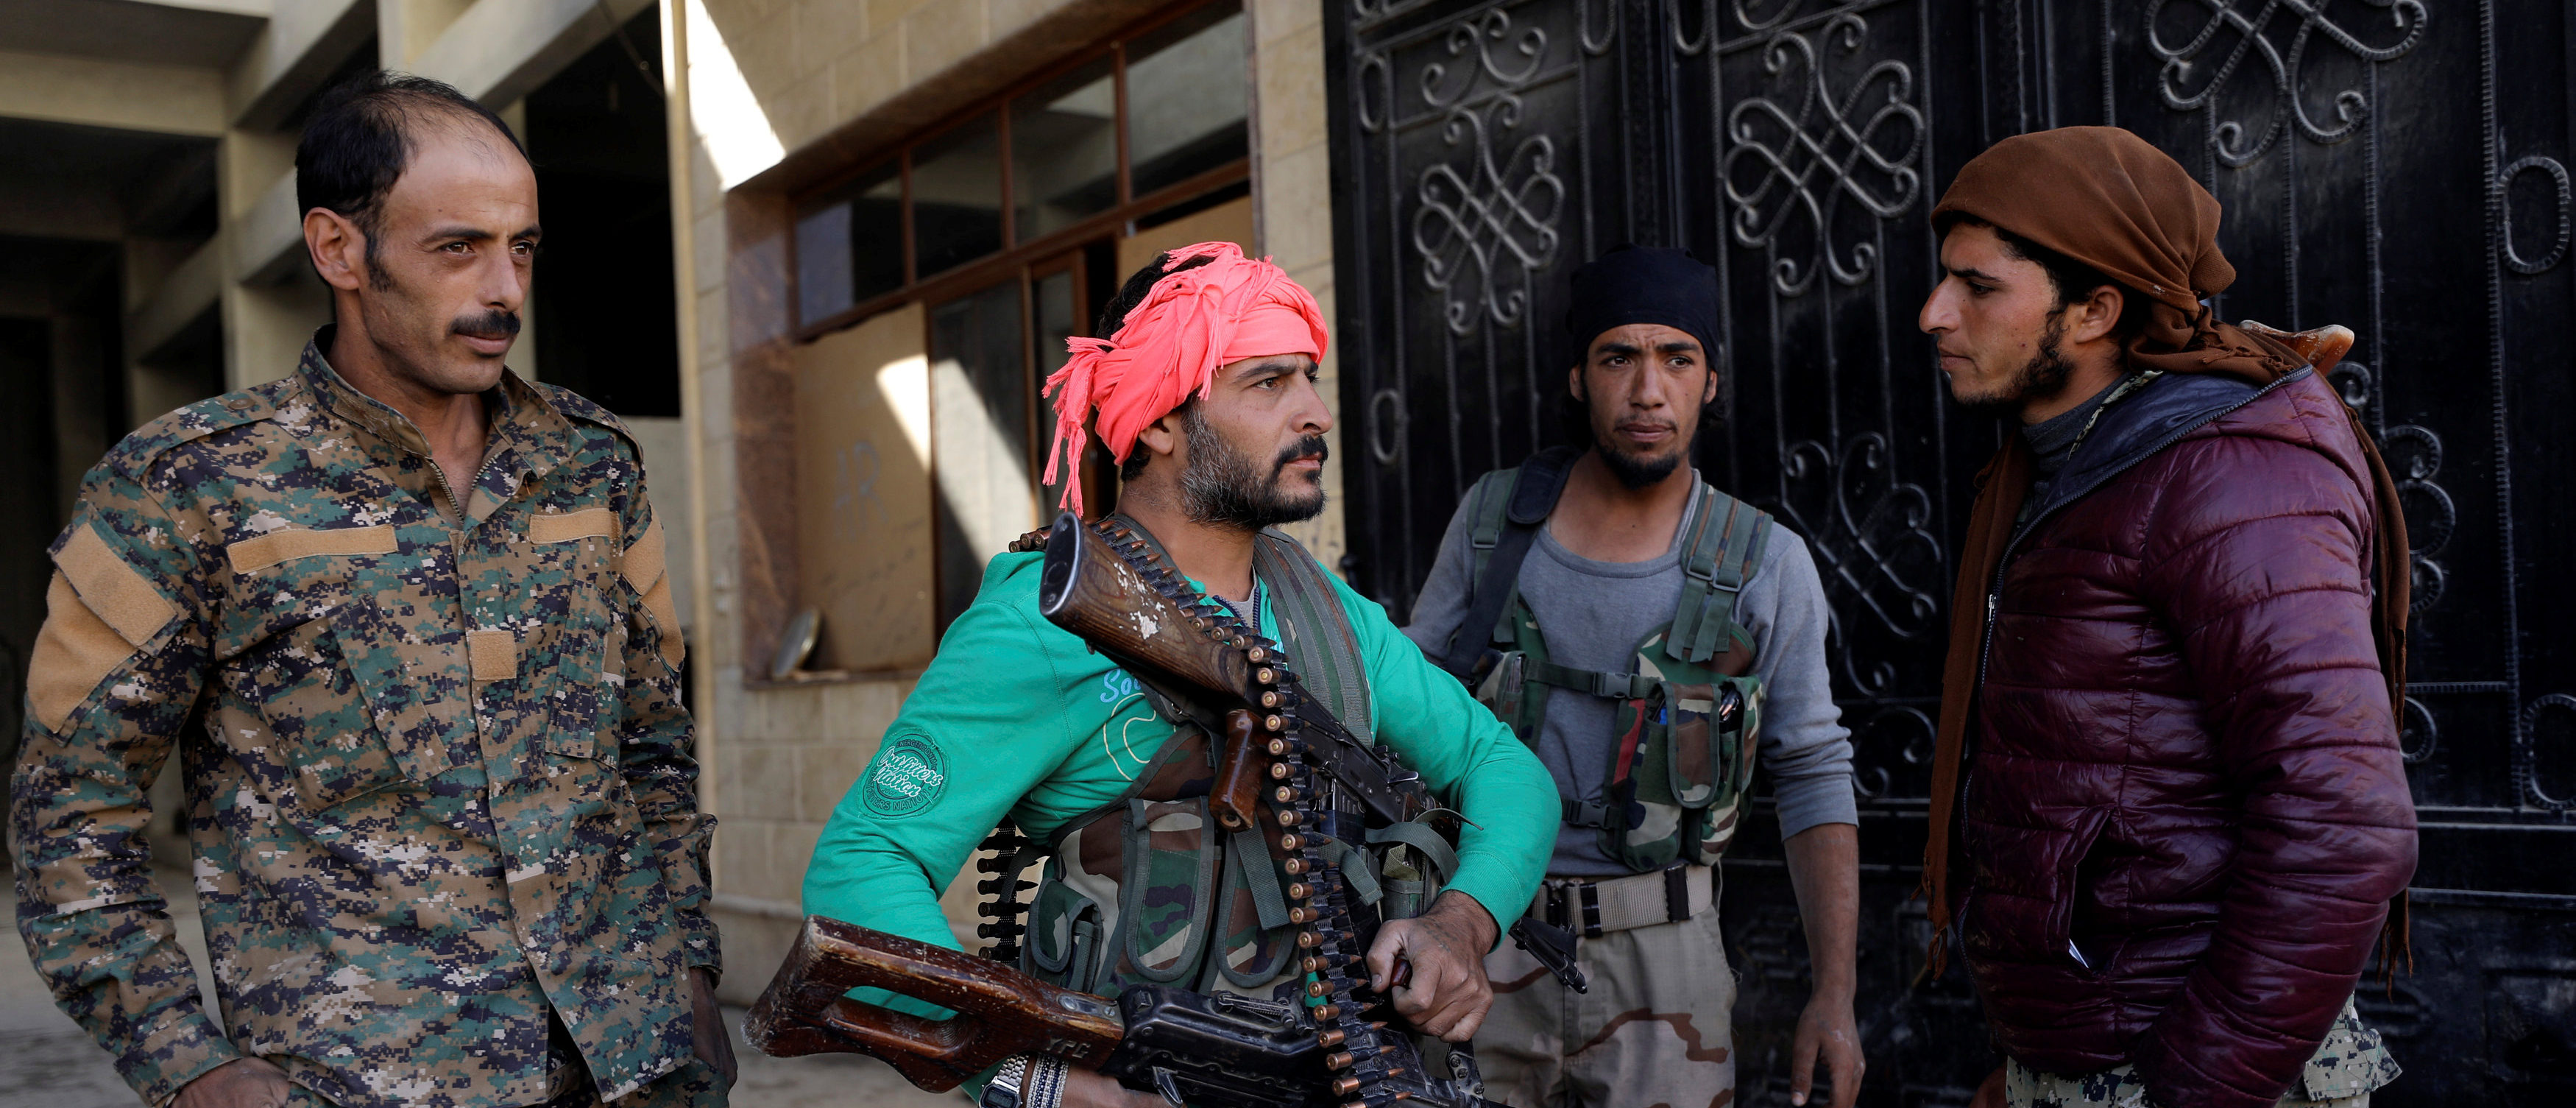 Raqqa On Lockdown After Possible ISIS Infiltration